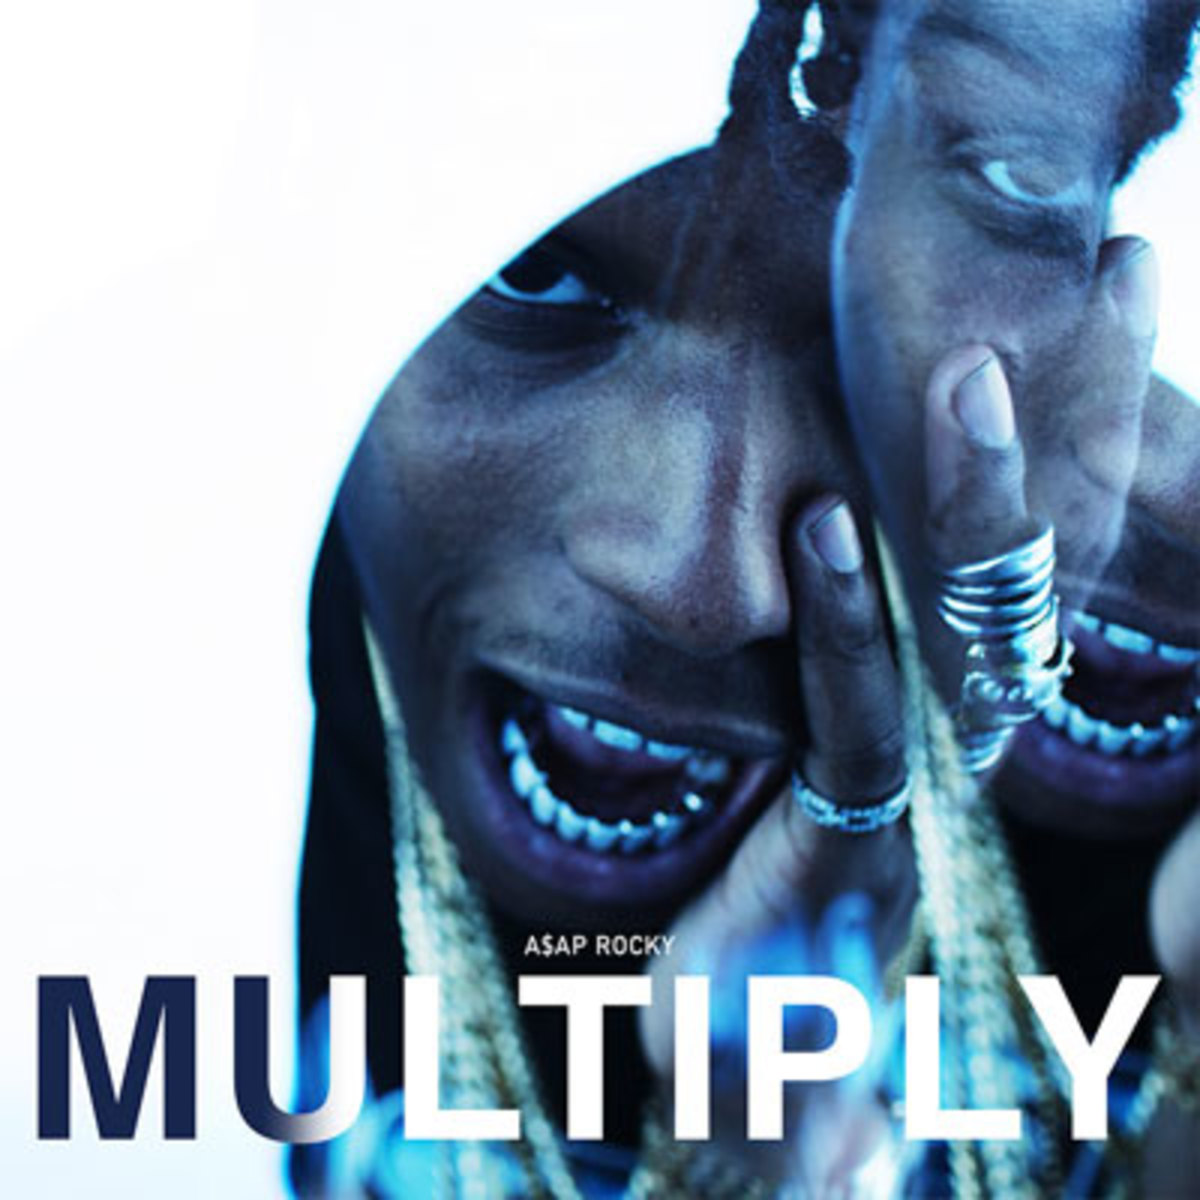 asaprocky-multiply.jpg